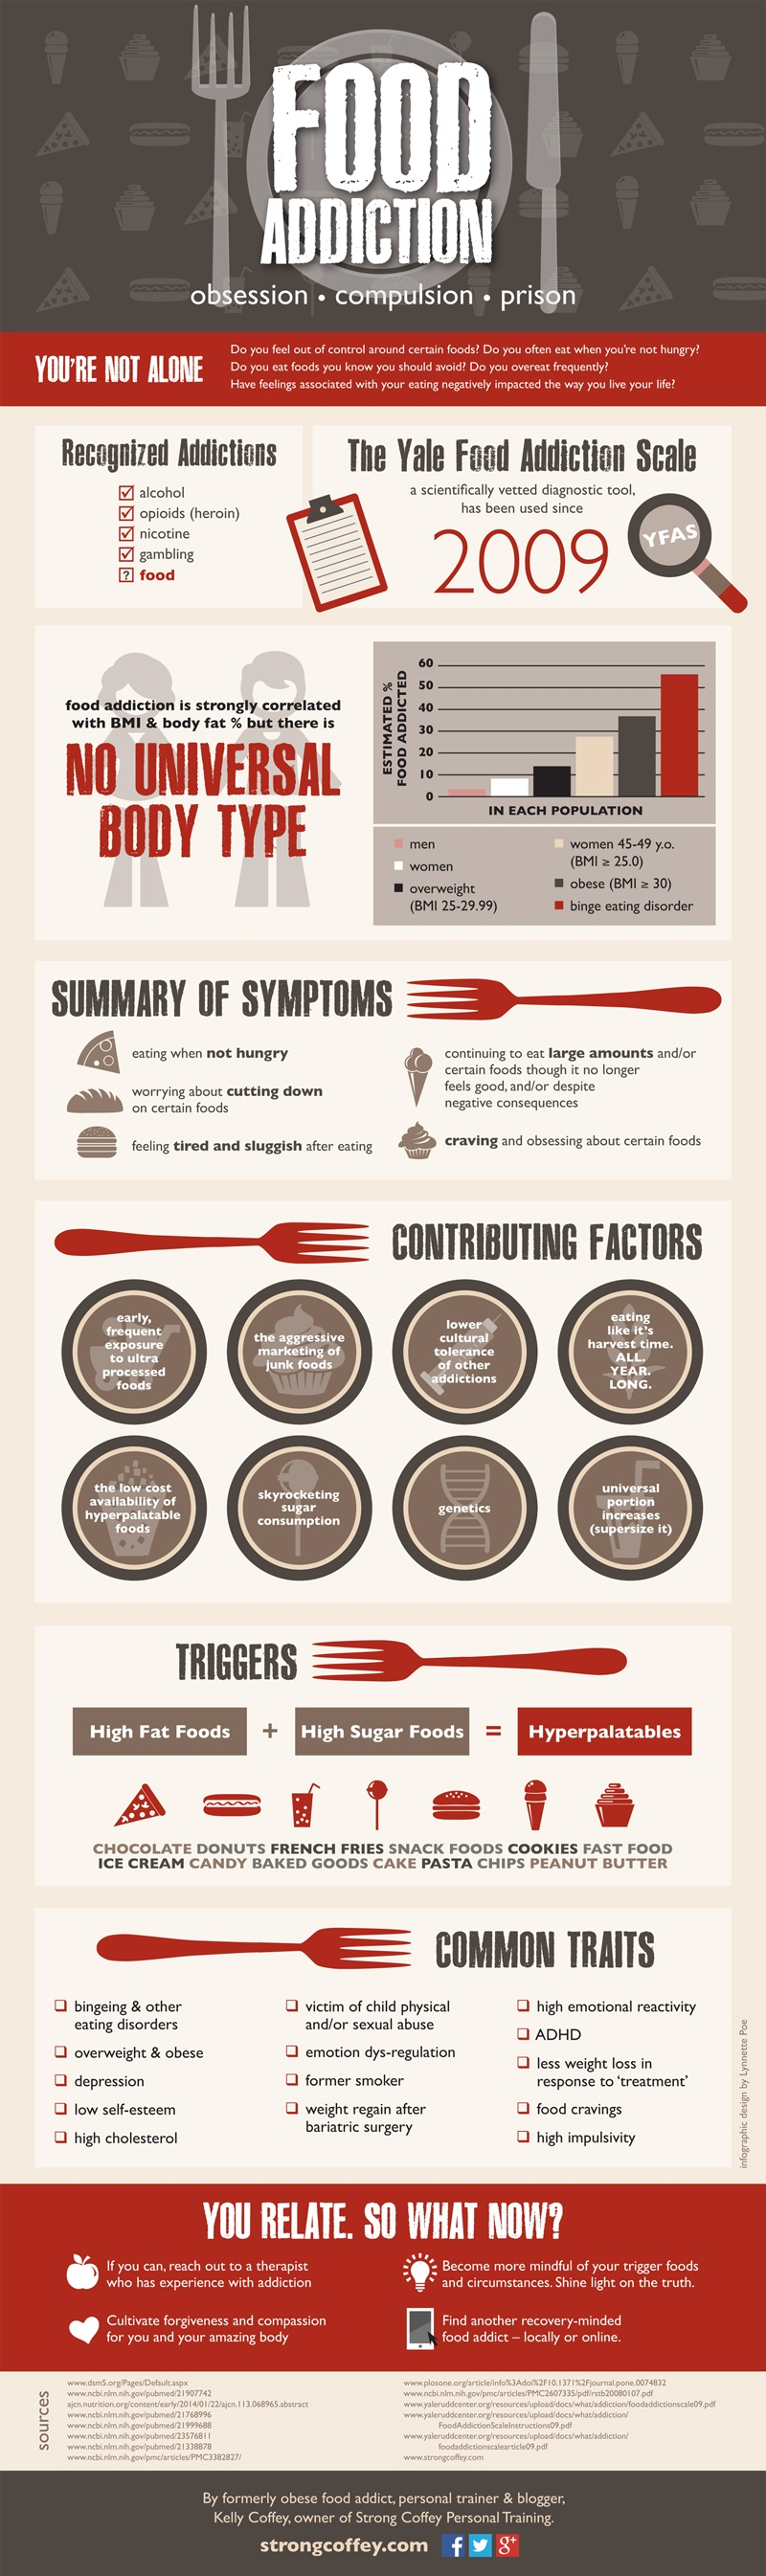 Food addiction infographic Lg